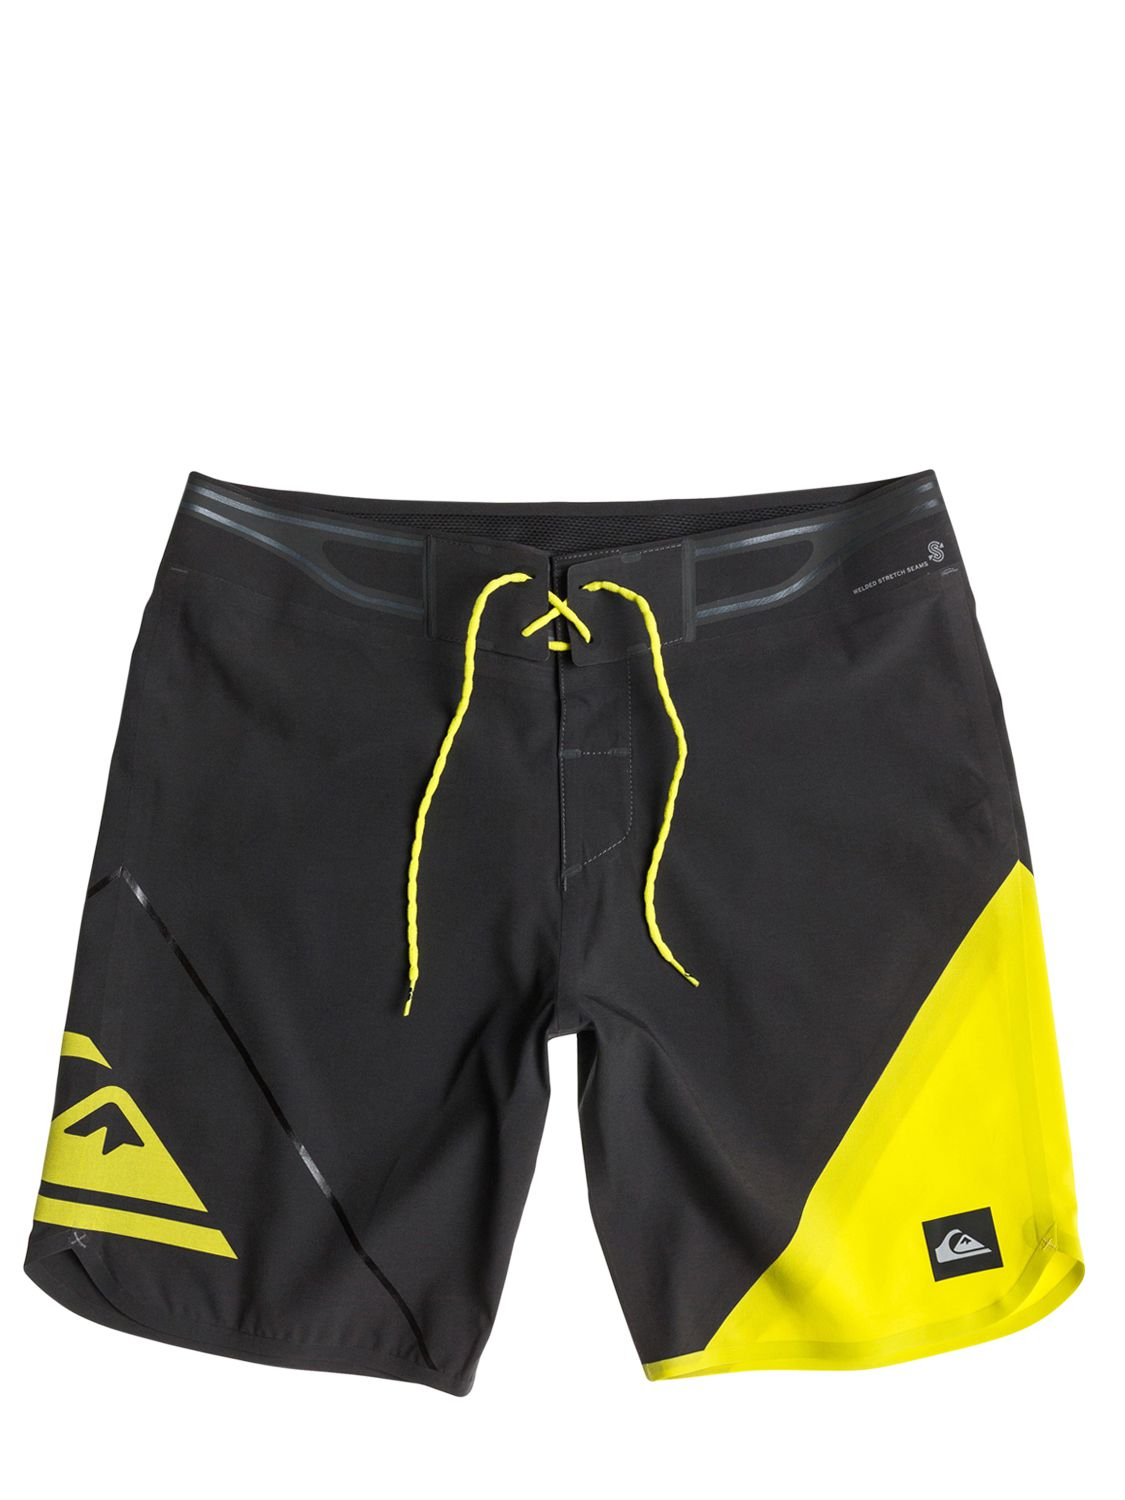 Lyst Quiksilver 19 Quot Ag47 New Wave Bonded Boardshorts In